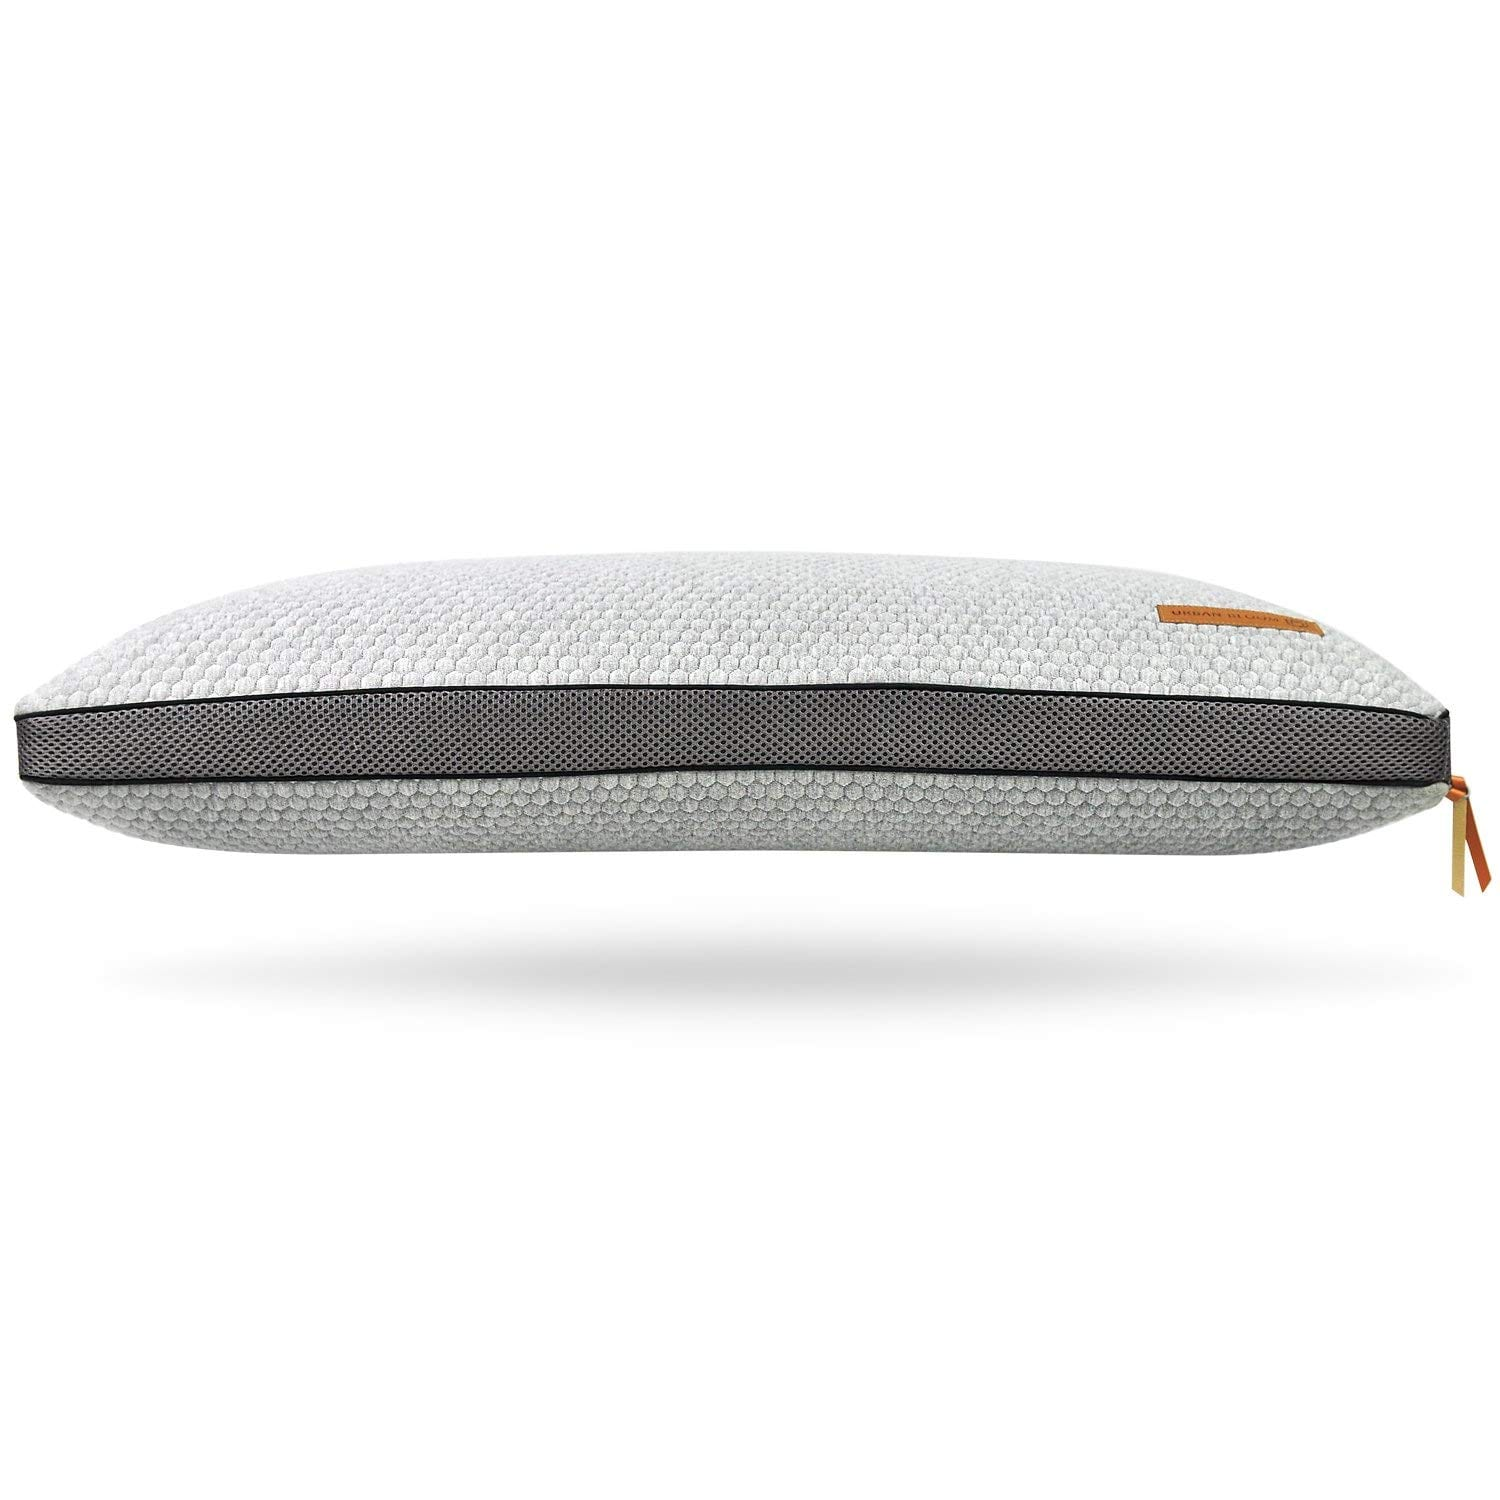 Urban Bloom Best Cooling Pillow Review By www.snoremagazine.com